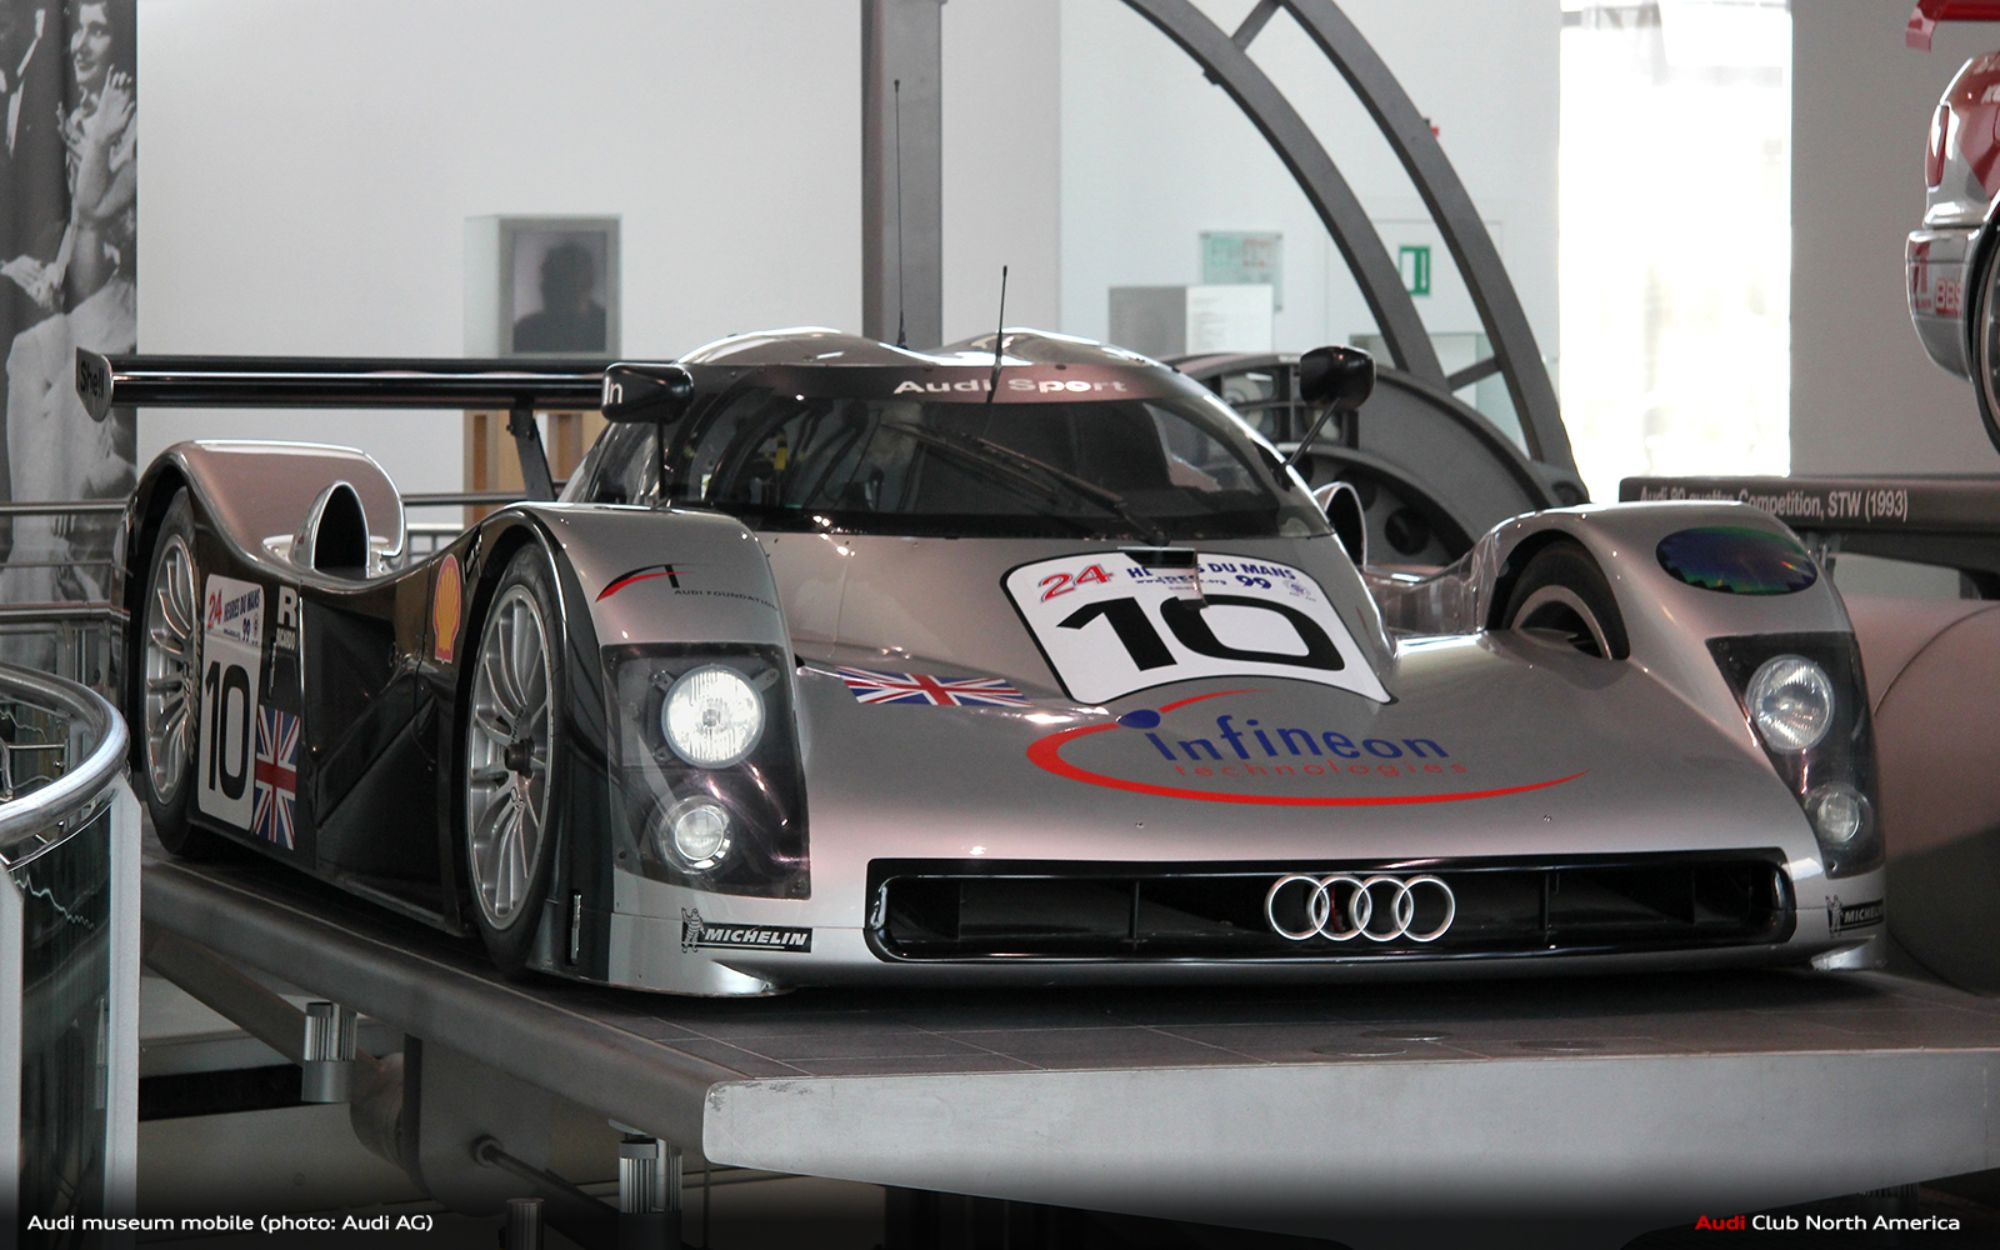 Audi museum mobile at Audi Forum Ingolstadt Has Reopened